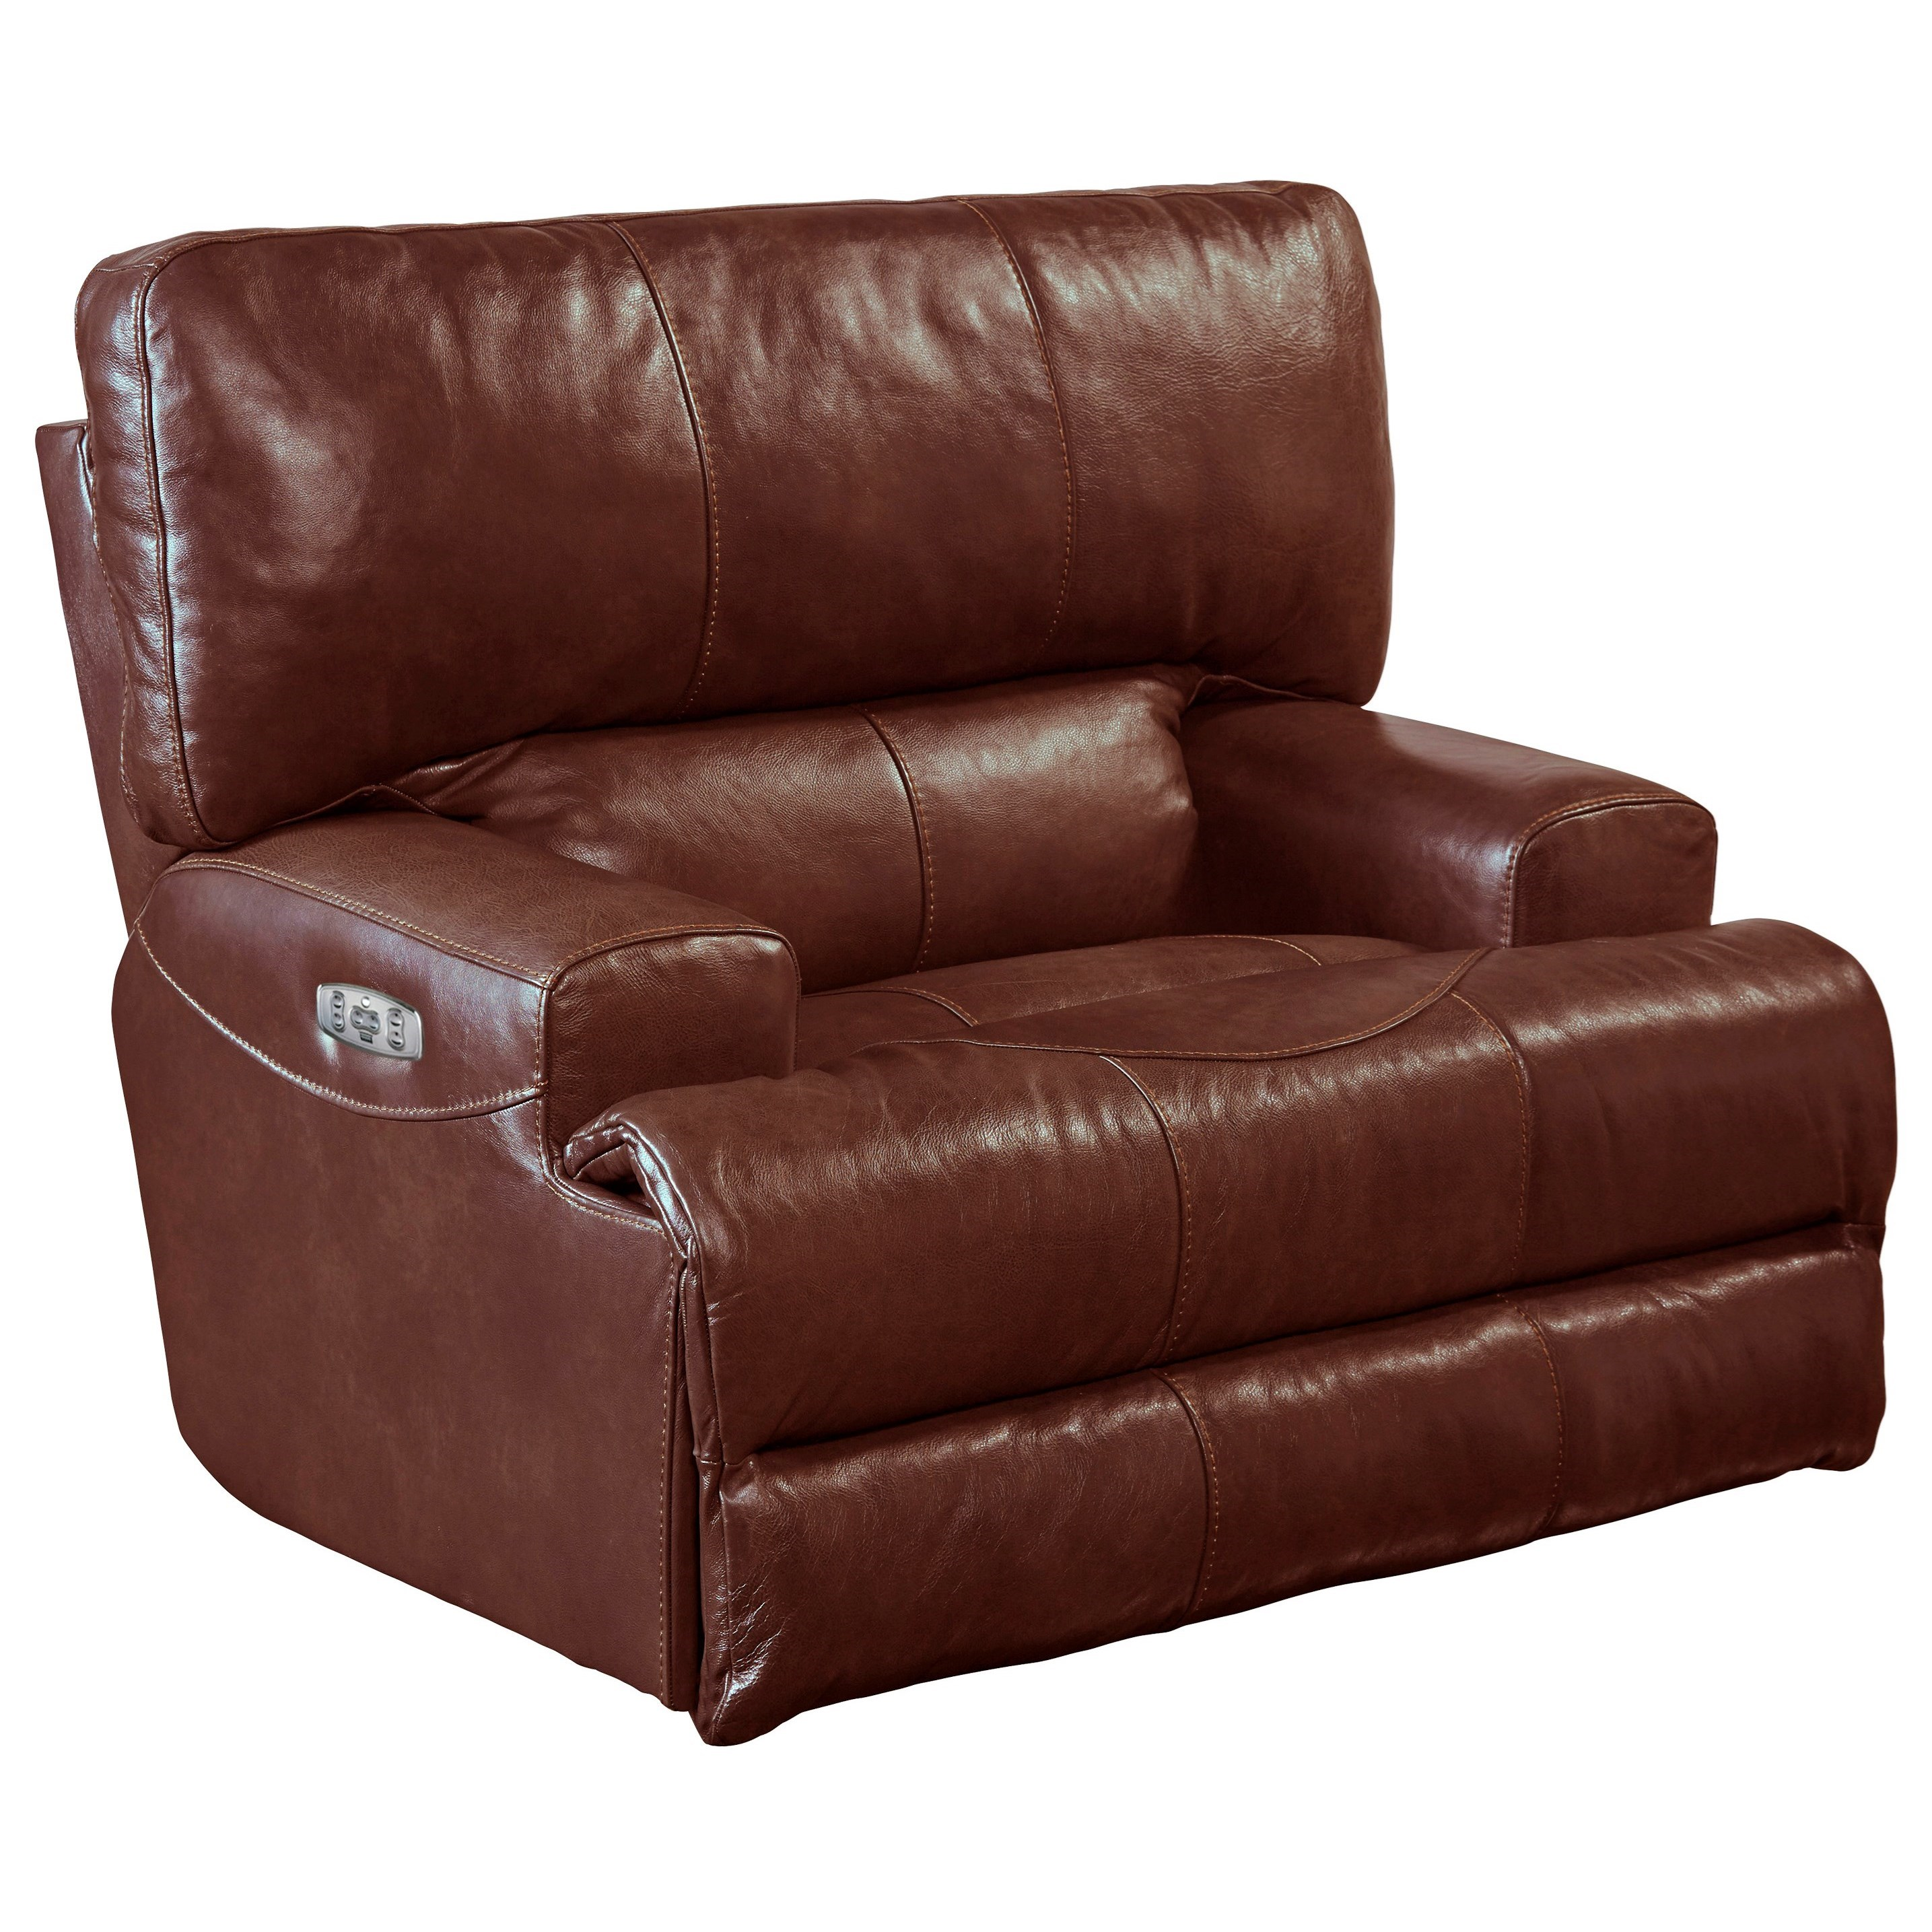 Wembley Power Lay Flat Recliner  by Catnapper at Northeast Factory Direct